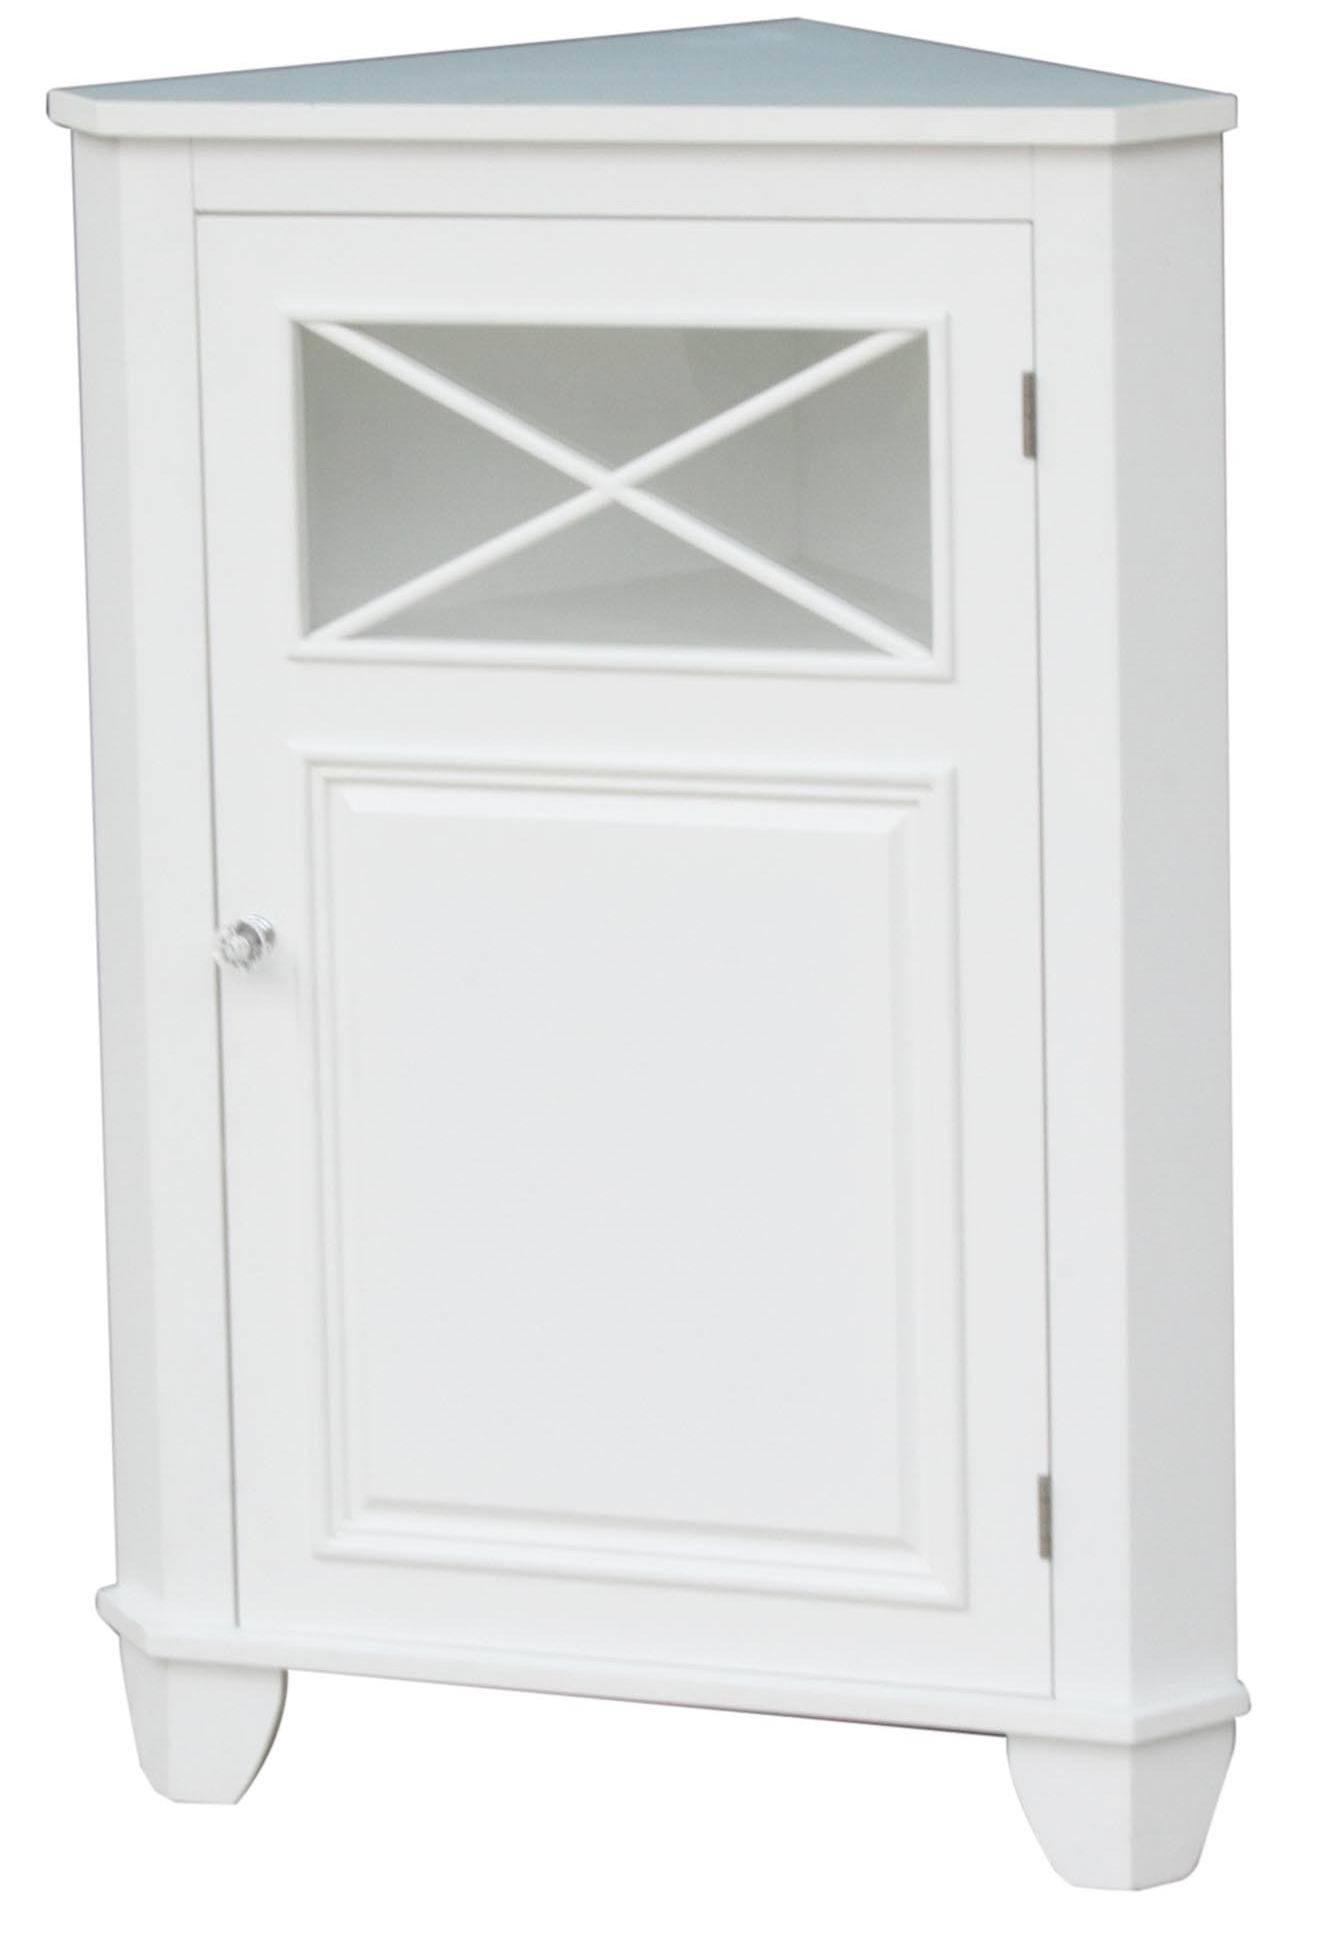 China 1 door corner cabinet china cabinet bathroom cabinet for 1 door cabinet